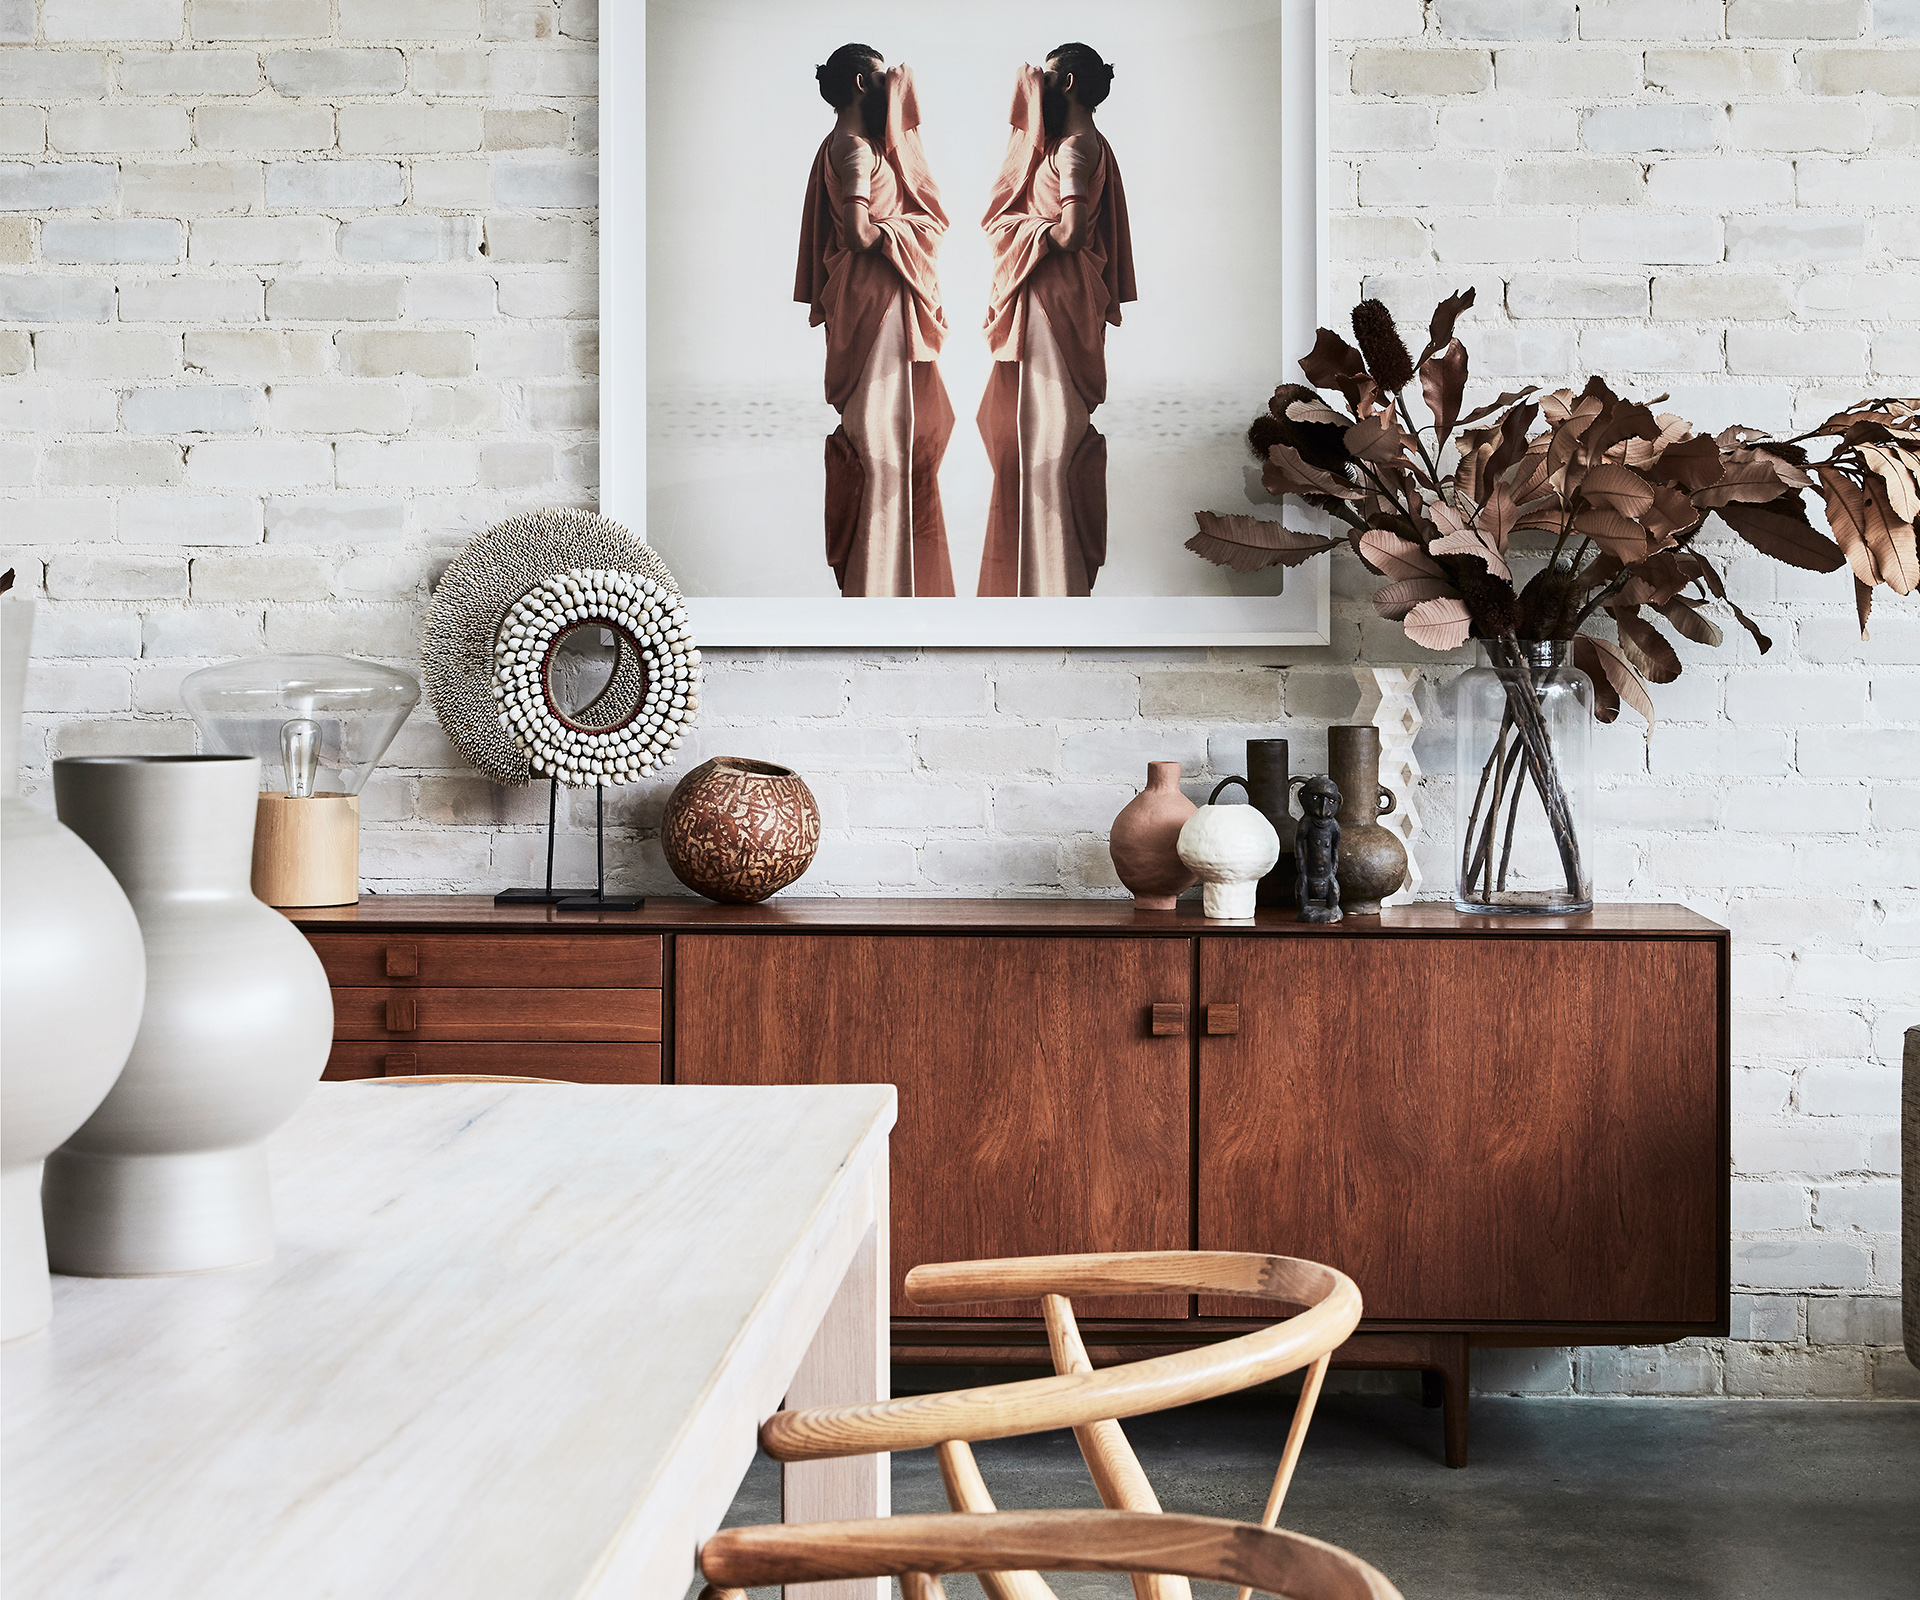 10 sideboard styling ideas | real living